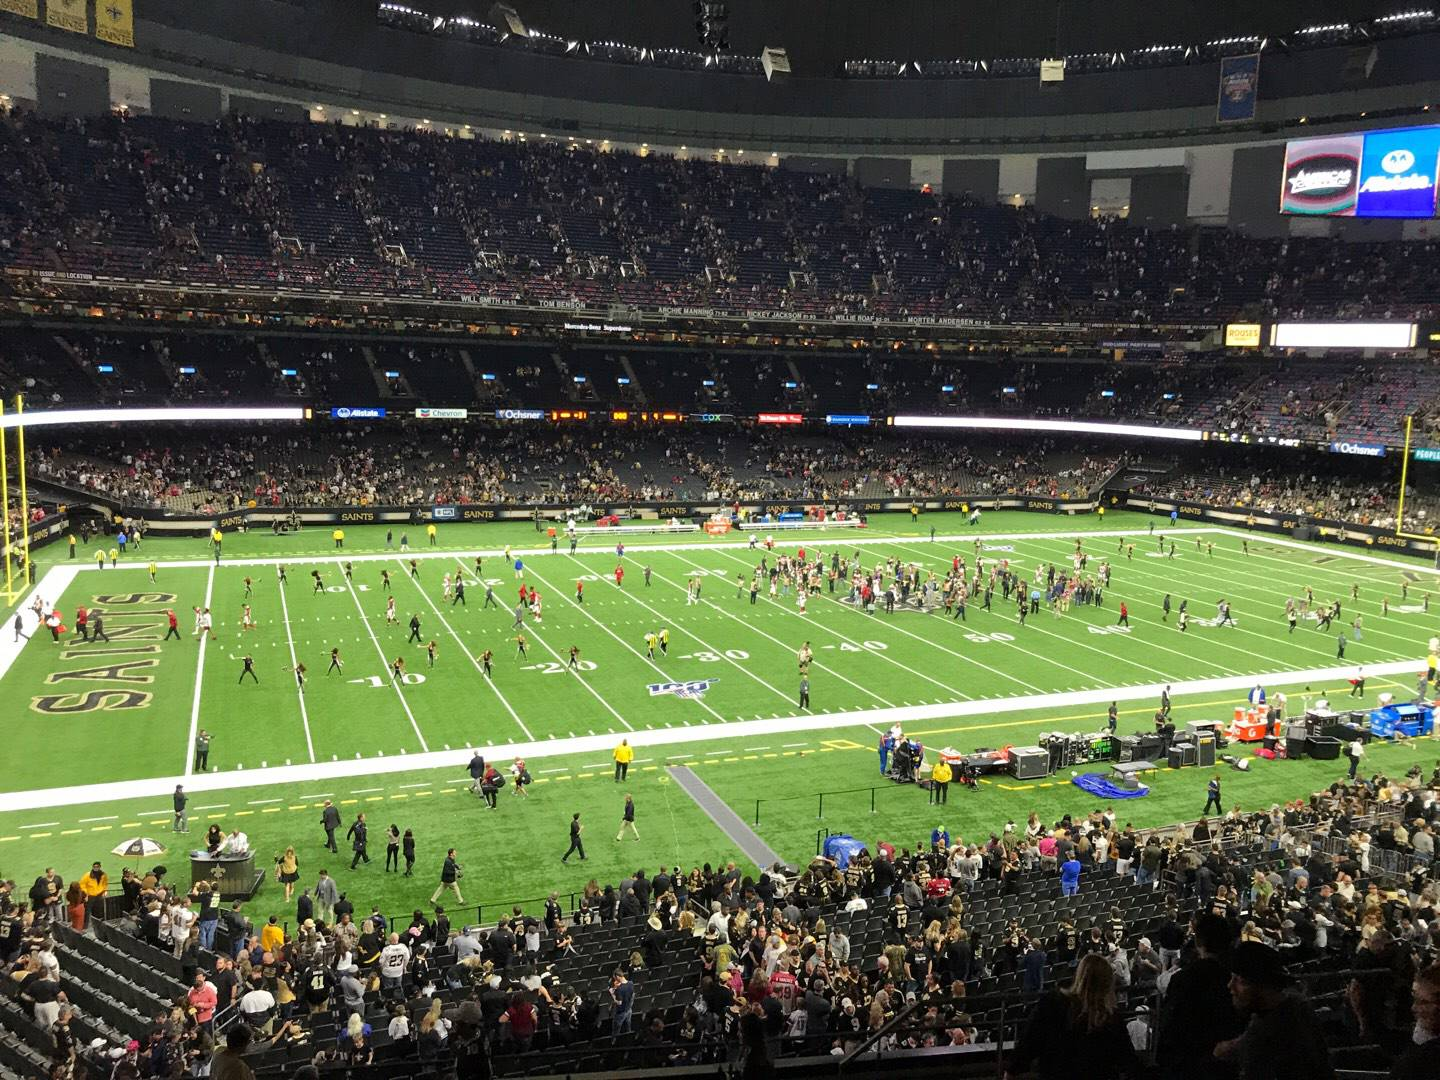 Mercedes-Benz Superdome Section 310 Row 13 Seat 6